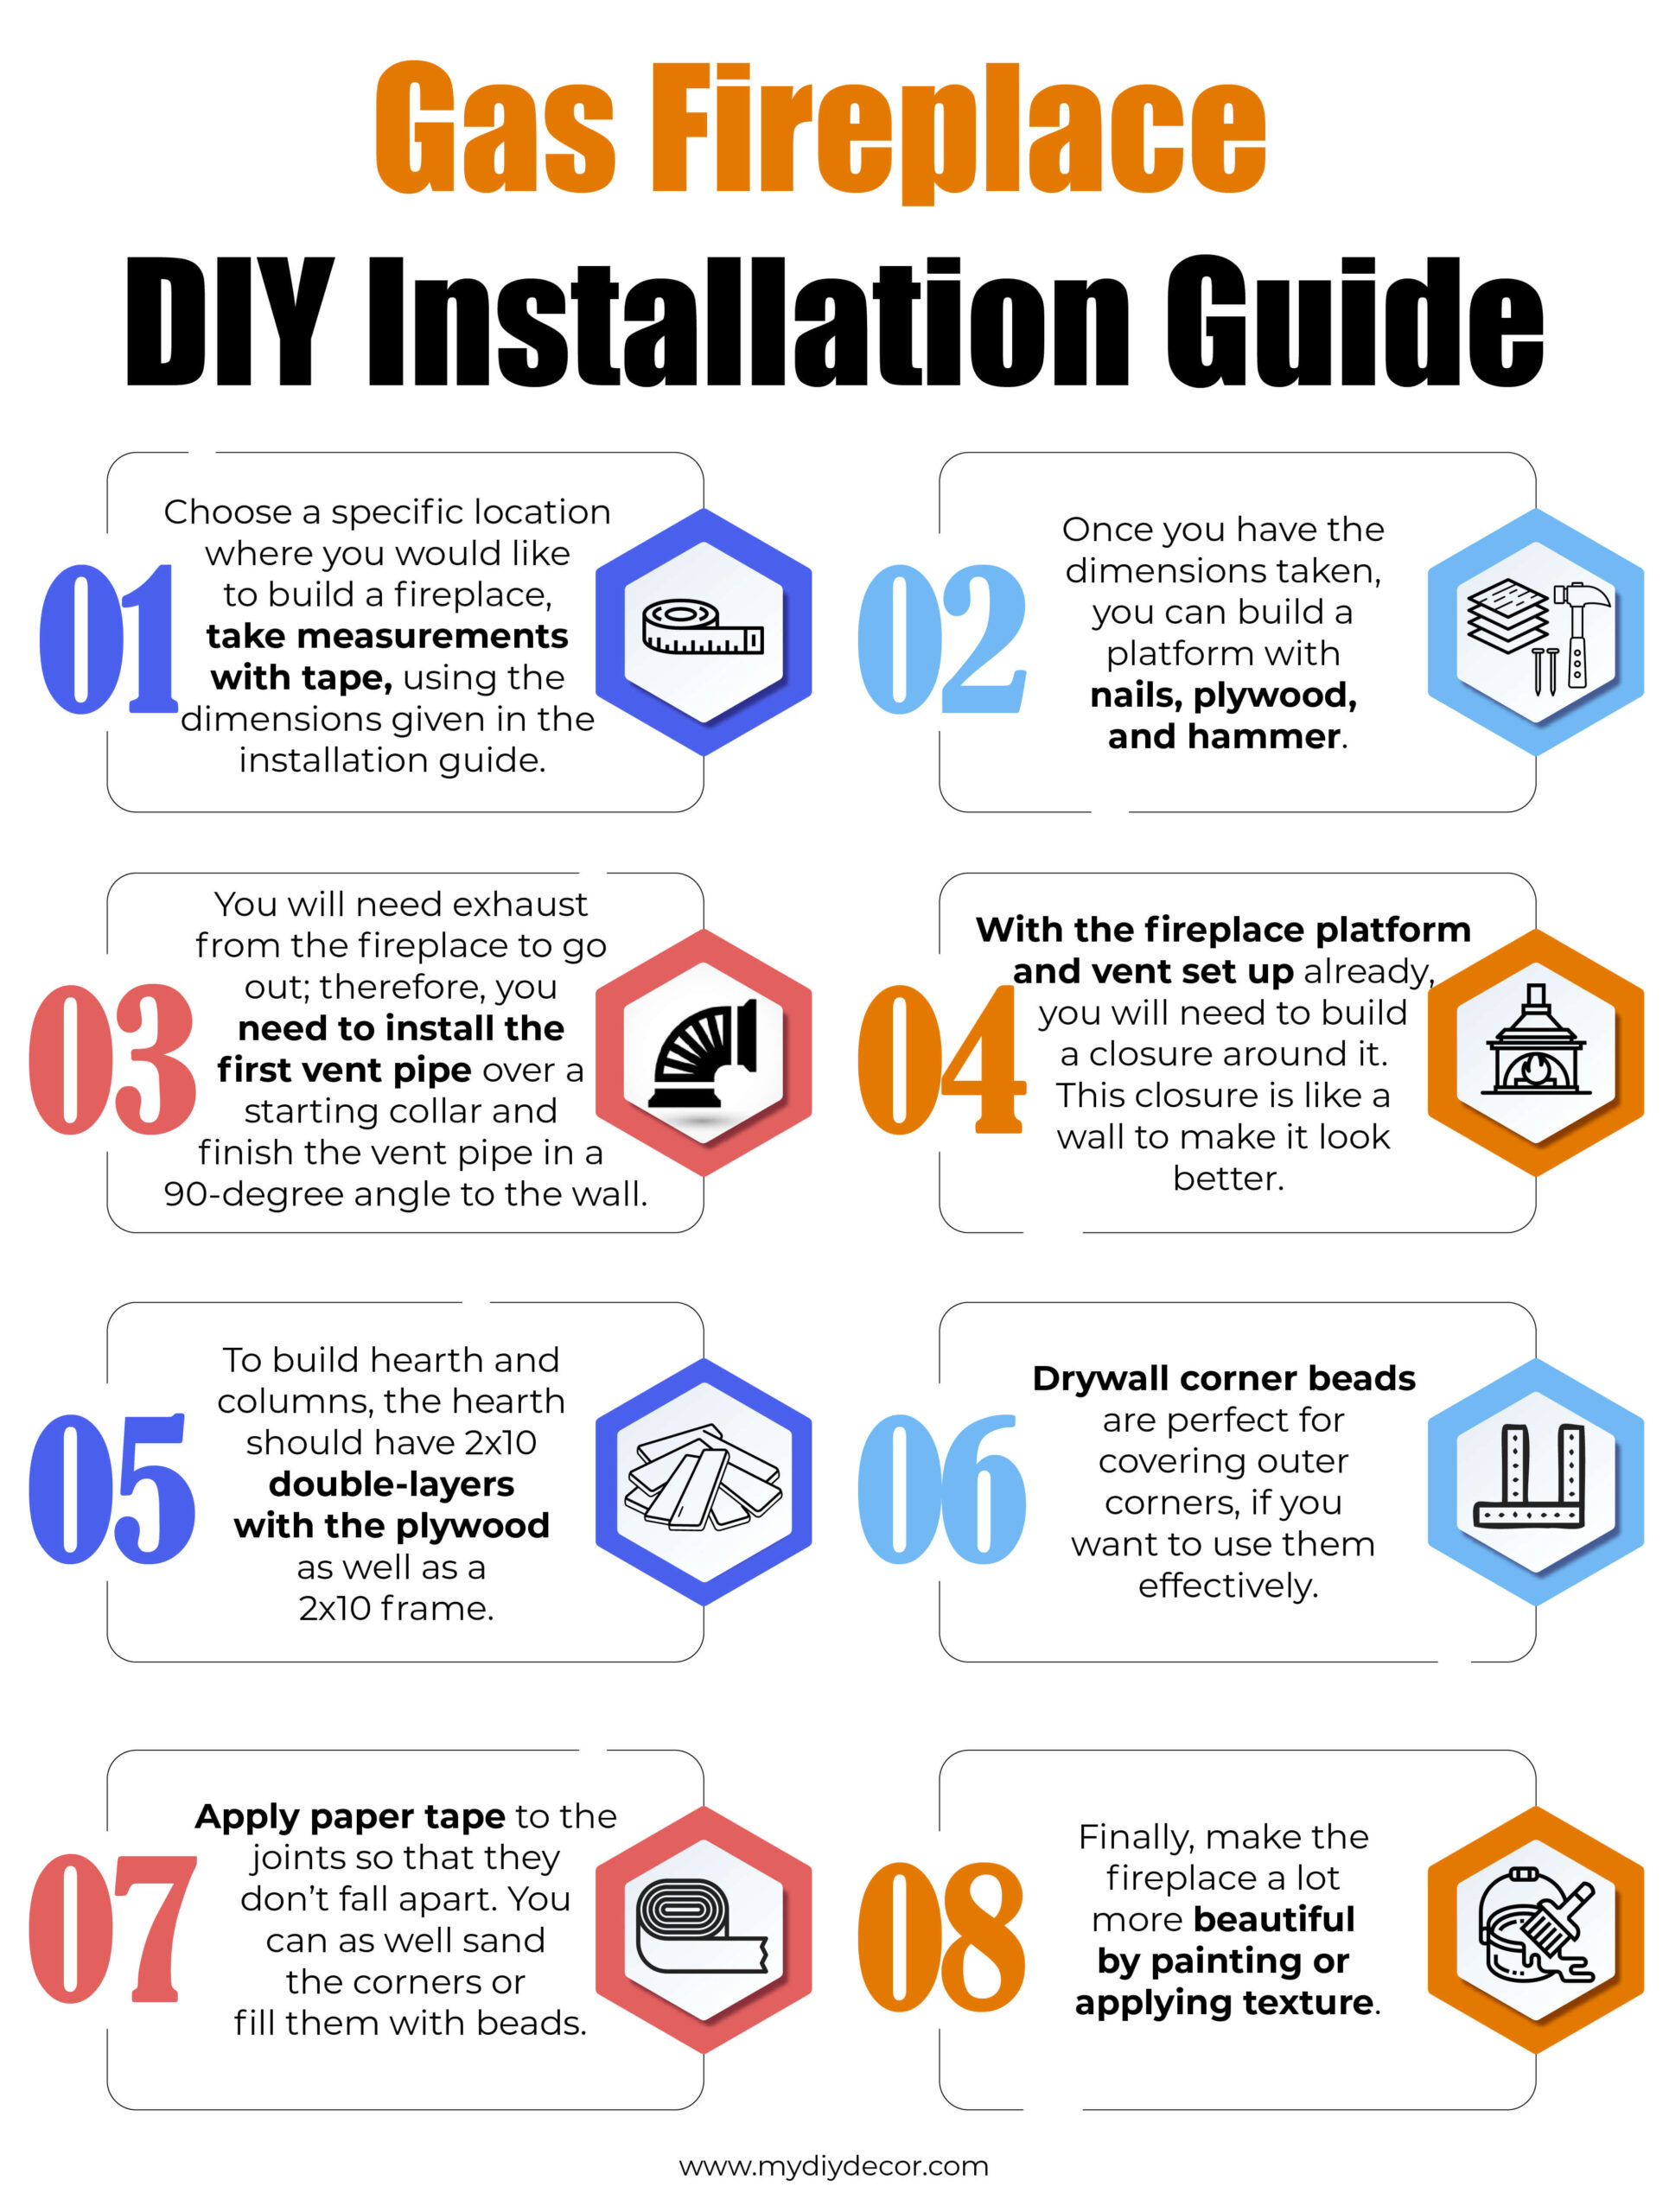 Gas fireplace DIY installation guide